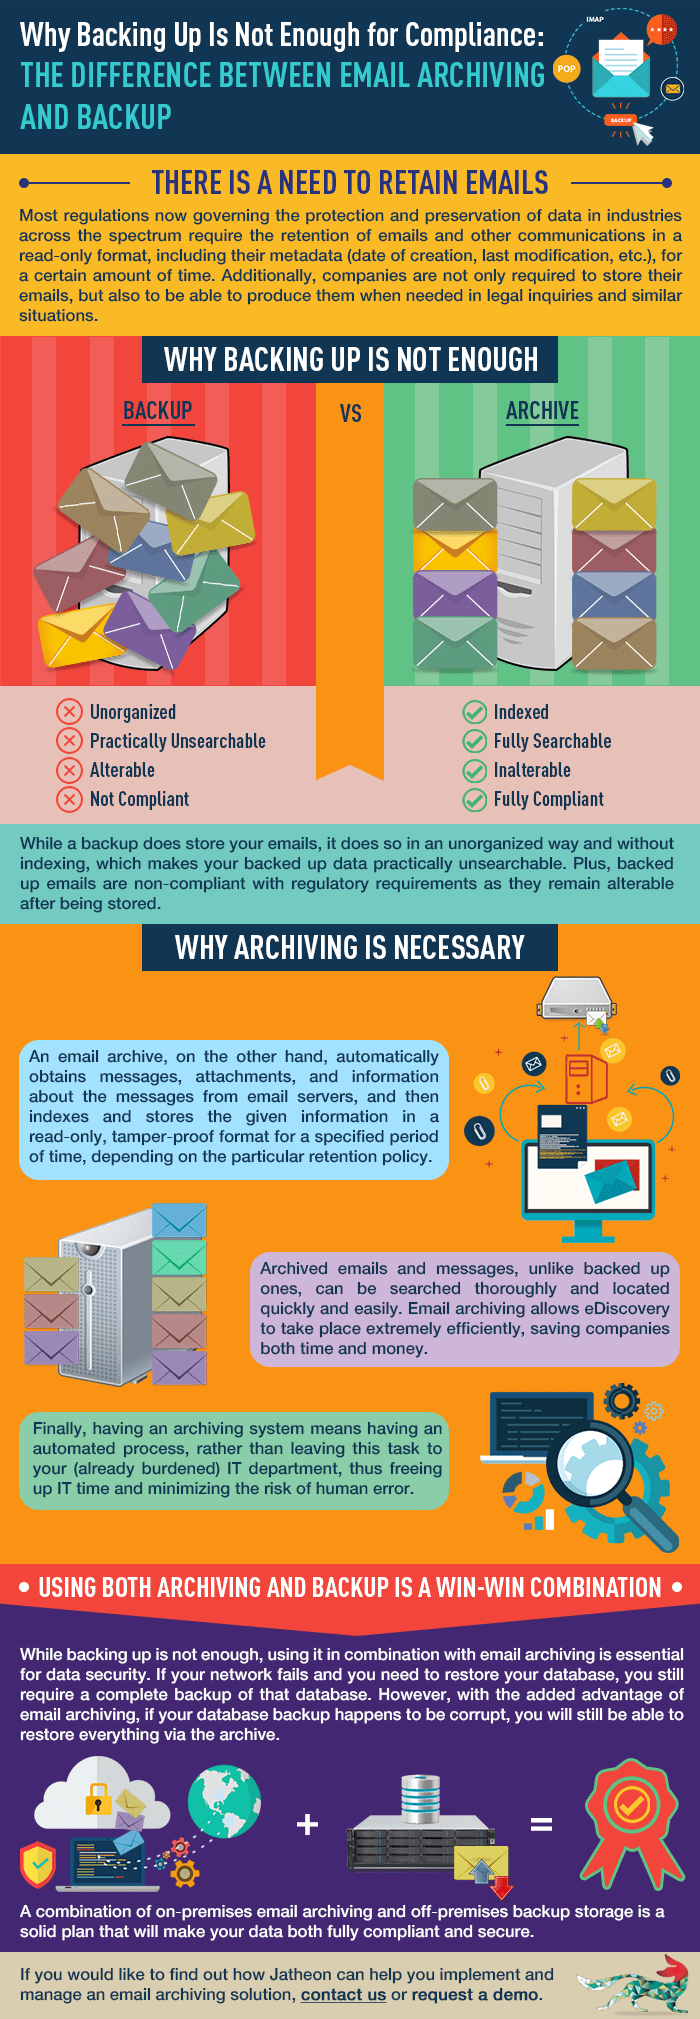 Why-Backing-Up-Is-Not-Enough-for-Compliance-infographic-may-2017